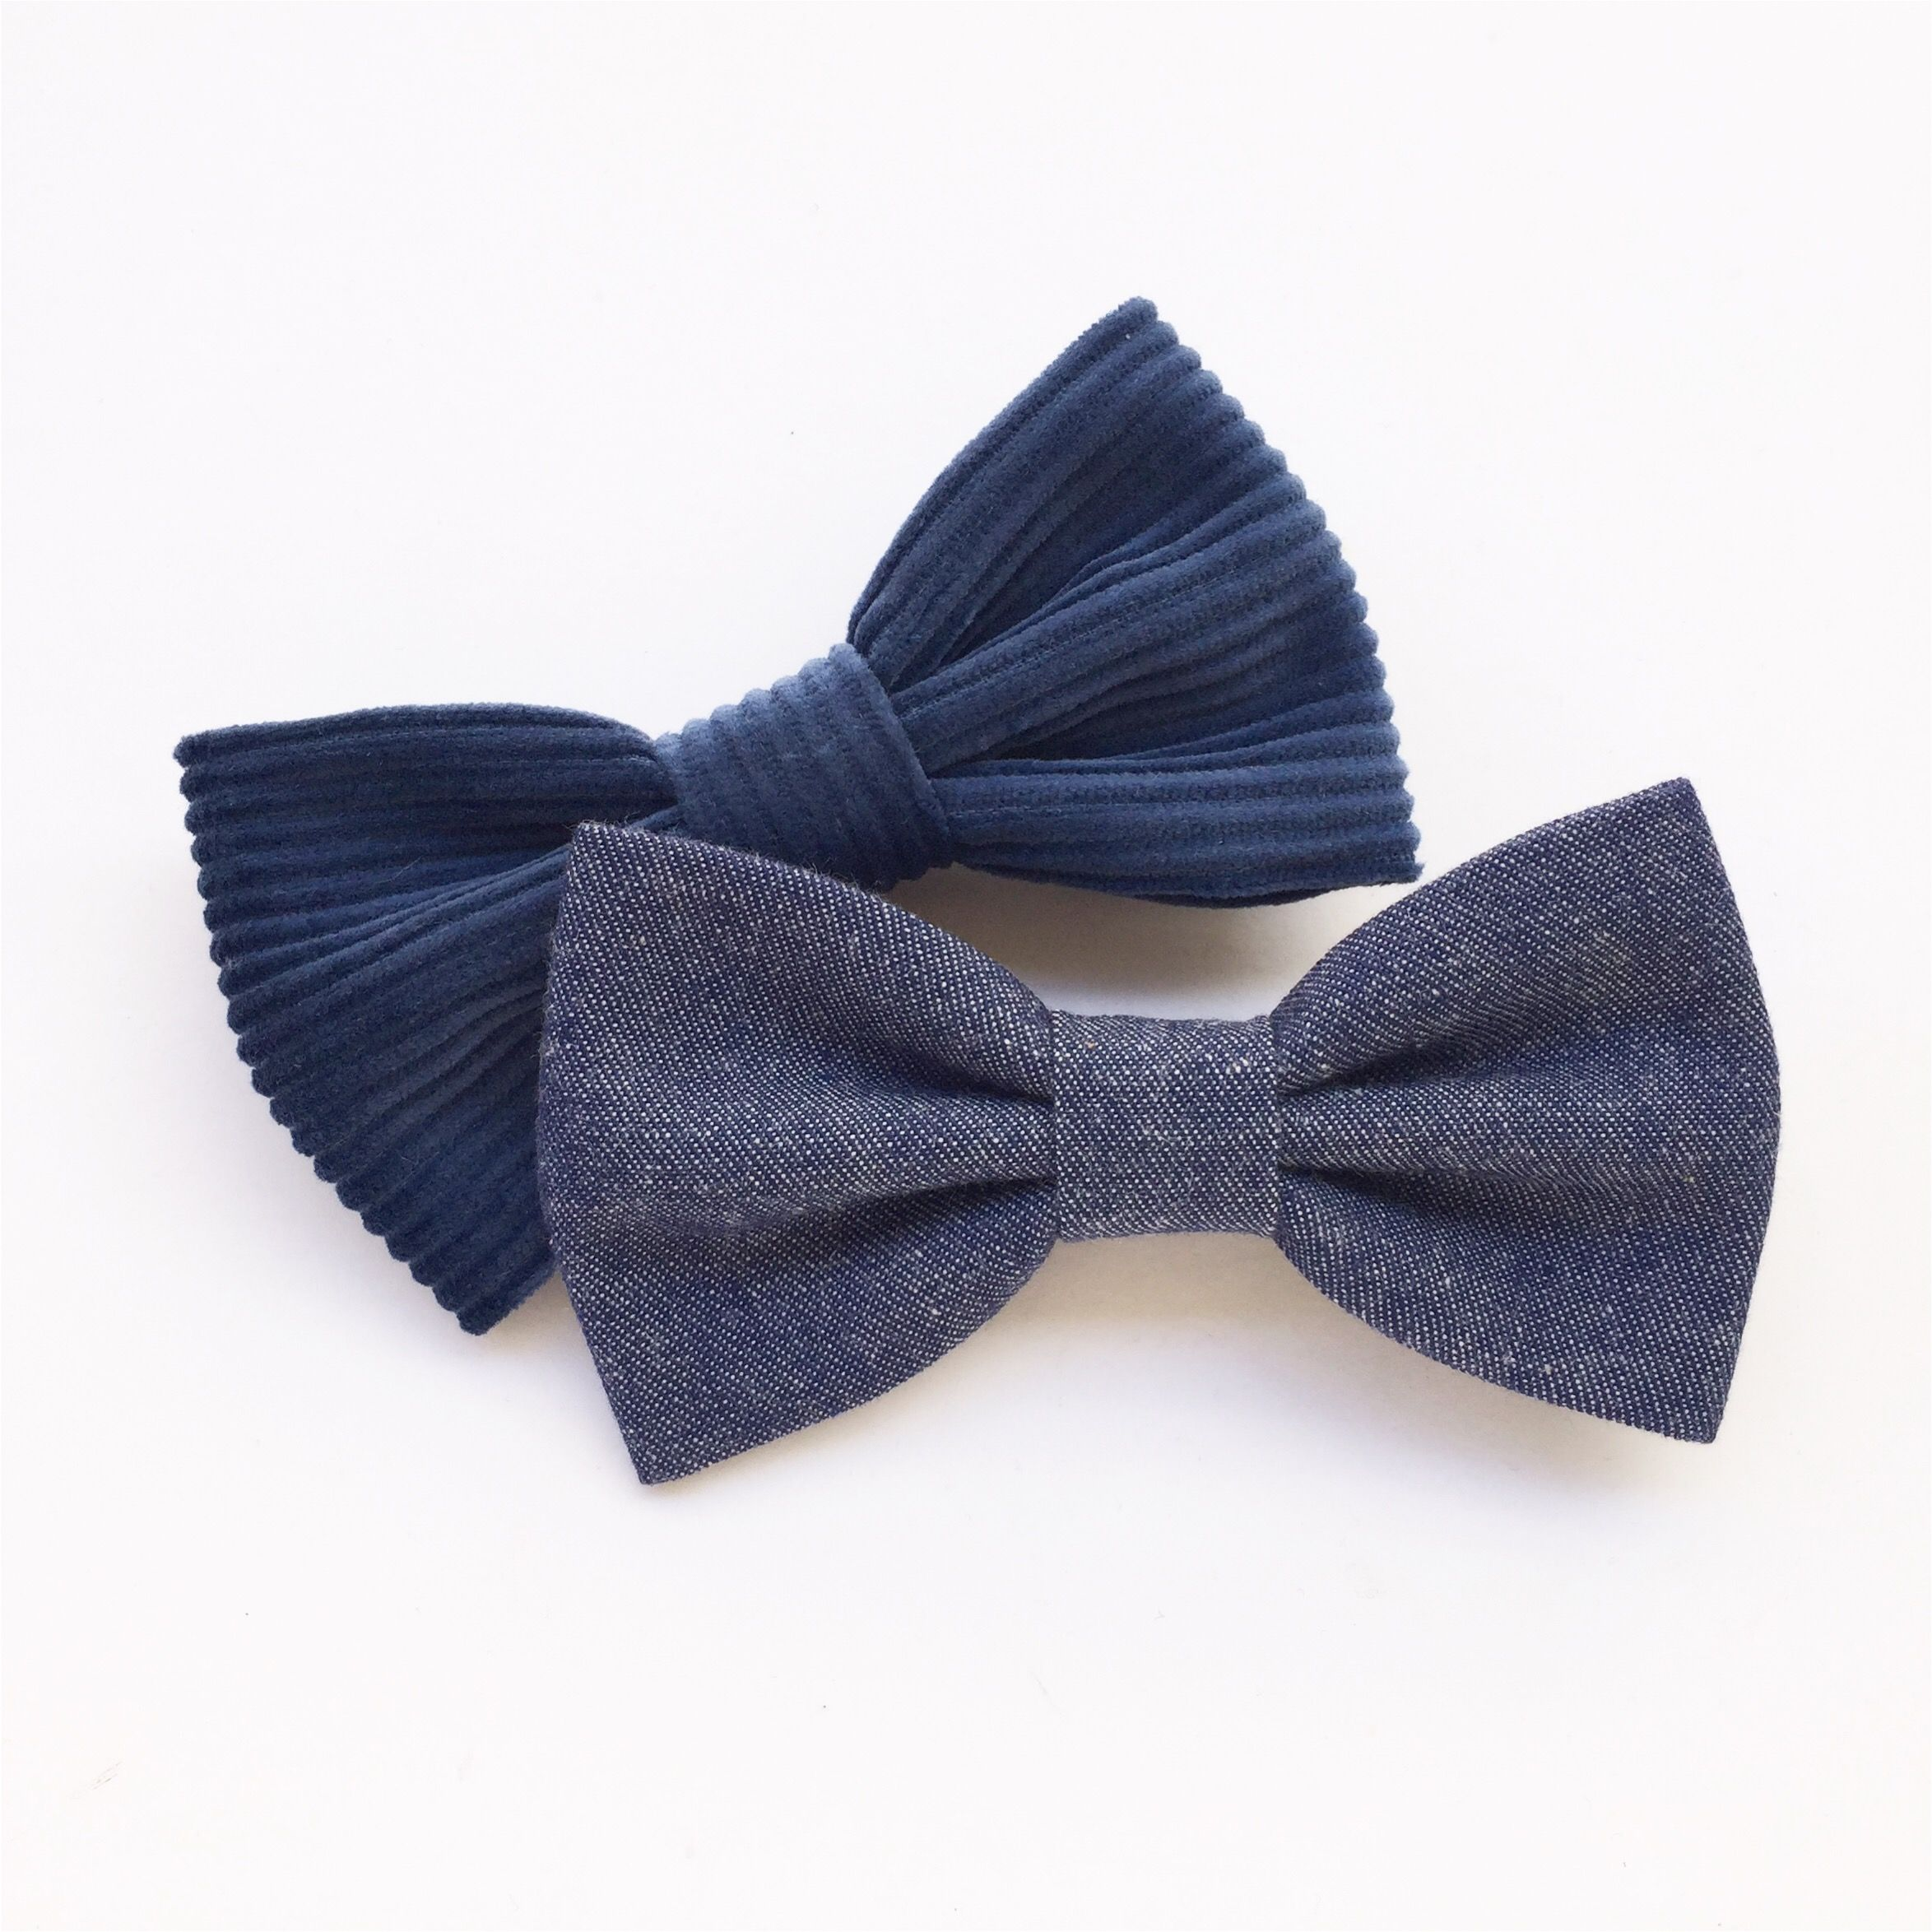 Color of the Year 2020, Pantone 2020, Classic Blue Bow tie www.scoccapapillon.etsy.com - #pantone #pantone2020 #coloroftheyear #coloroftheyear2020 #classicblue #pantonecolor #pantoneclassicblue #color2020 #menswear #lifestyle #lifestyle2020 #trends2020 #colortrend2020 #colortrends2020 #colortrend #etsy #mensfahion #mensstyle #madeinitaly #moodboard #moodboardwedding #moodboard2020 #colorinspiration2020 #colorinspiration #classicbluewedding #classicblueaccessories #wedding2020